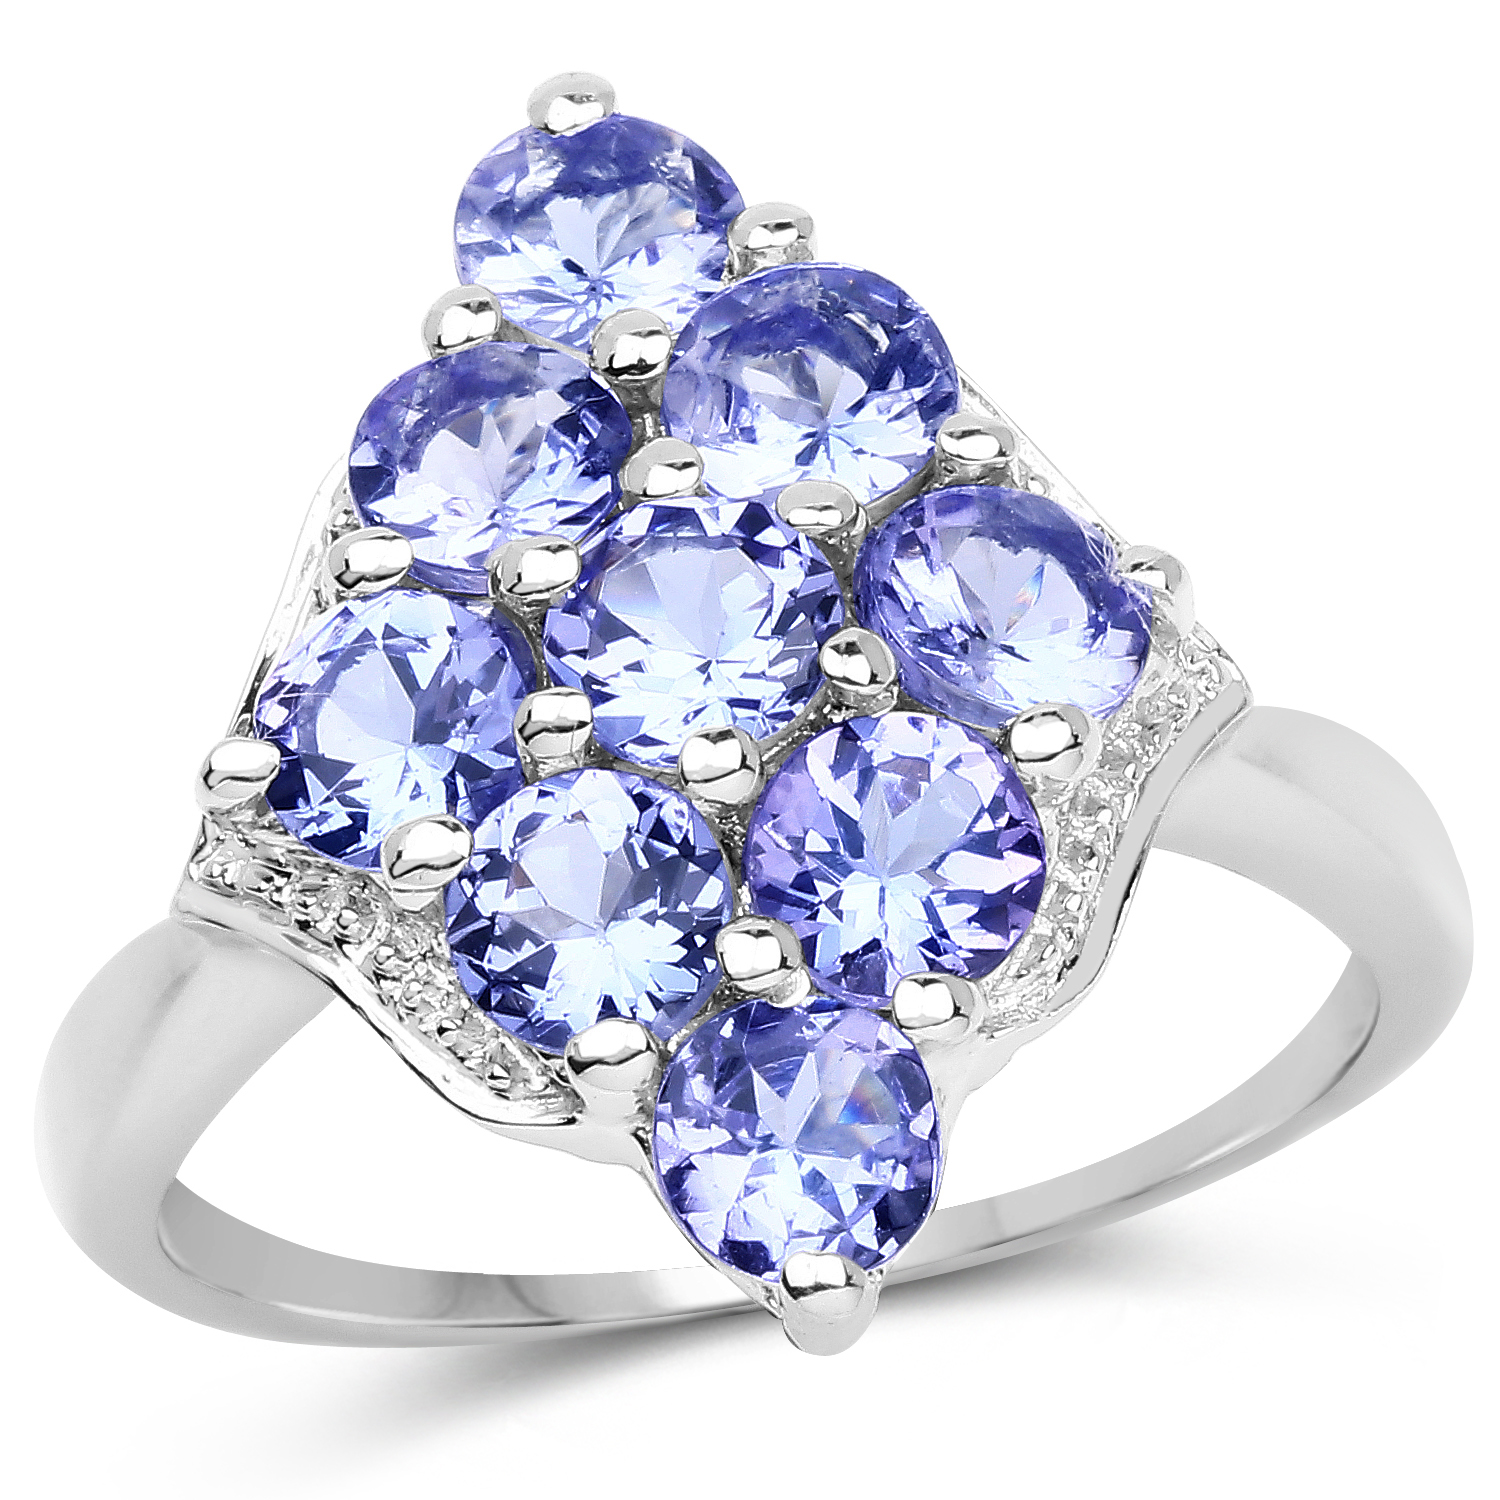 2.07 ct. Genuine Tanzanite Sterling Silver Ring by DAZYLE